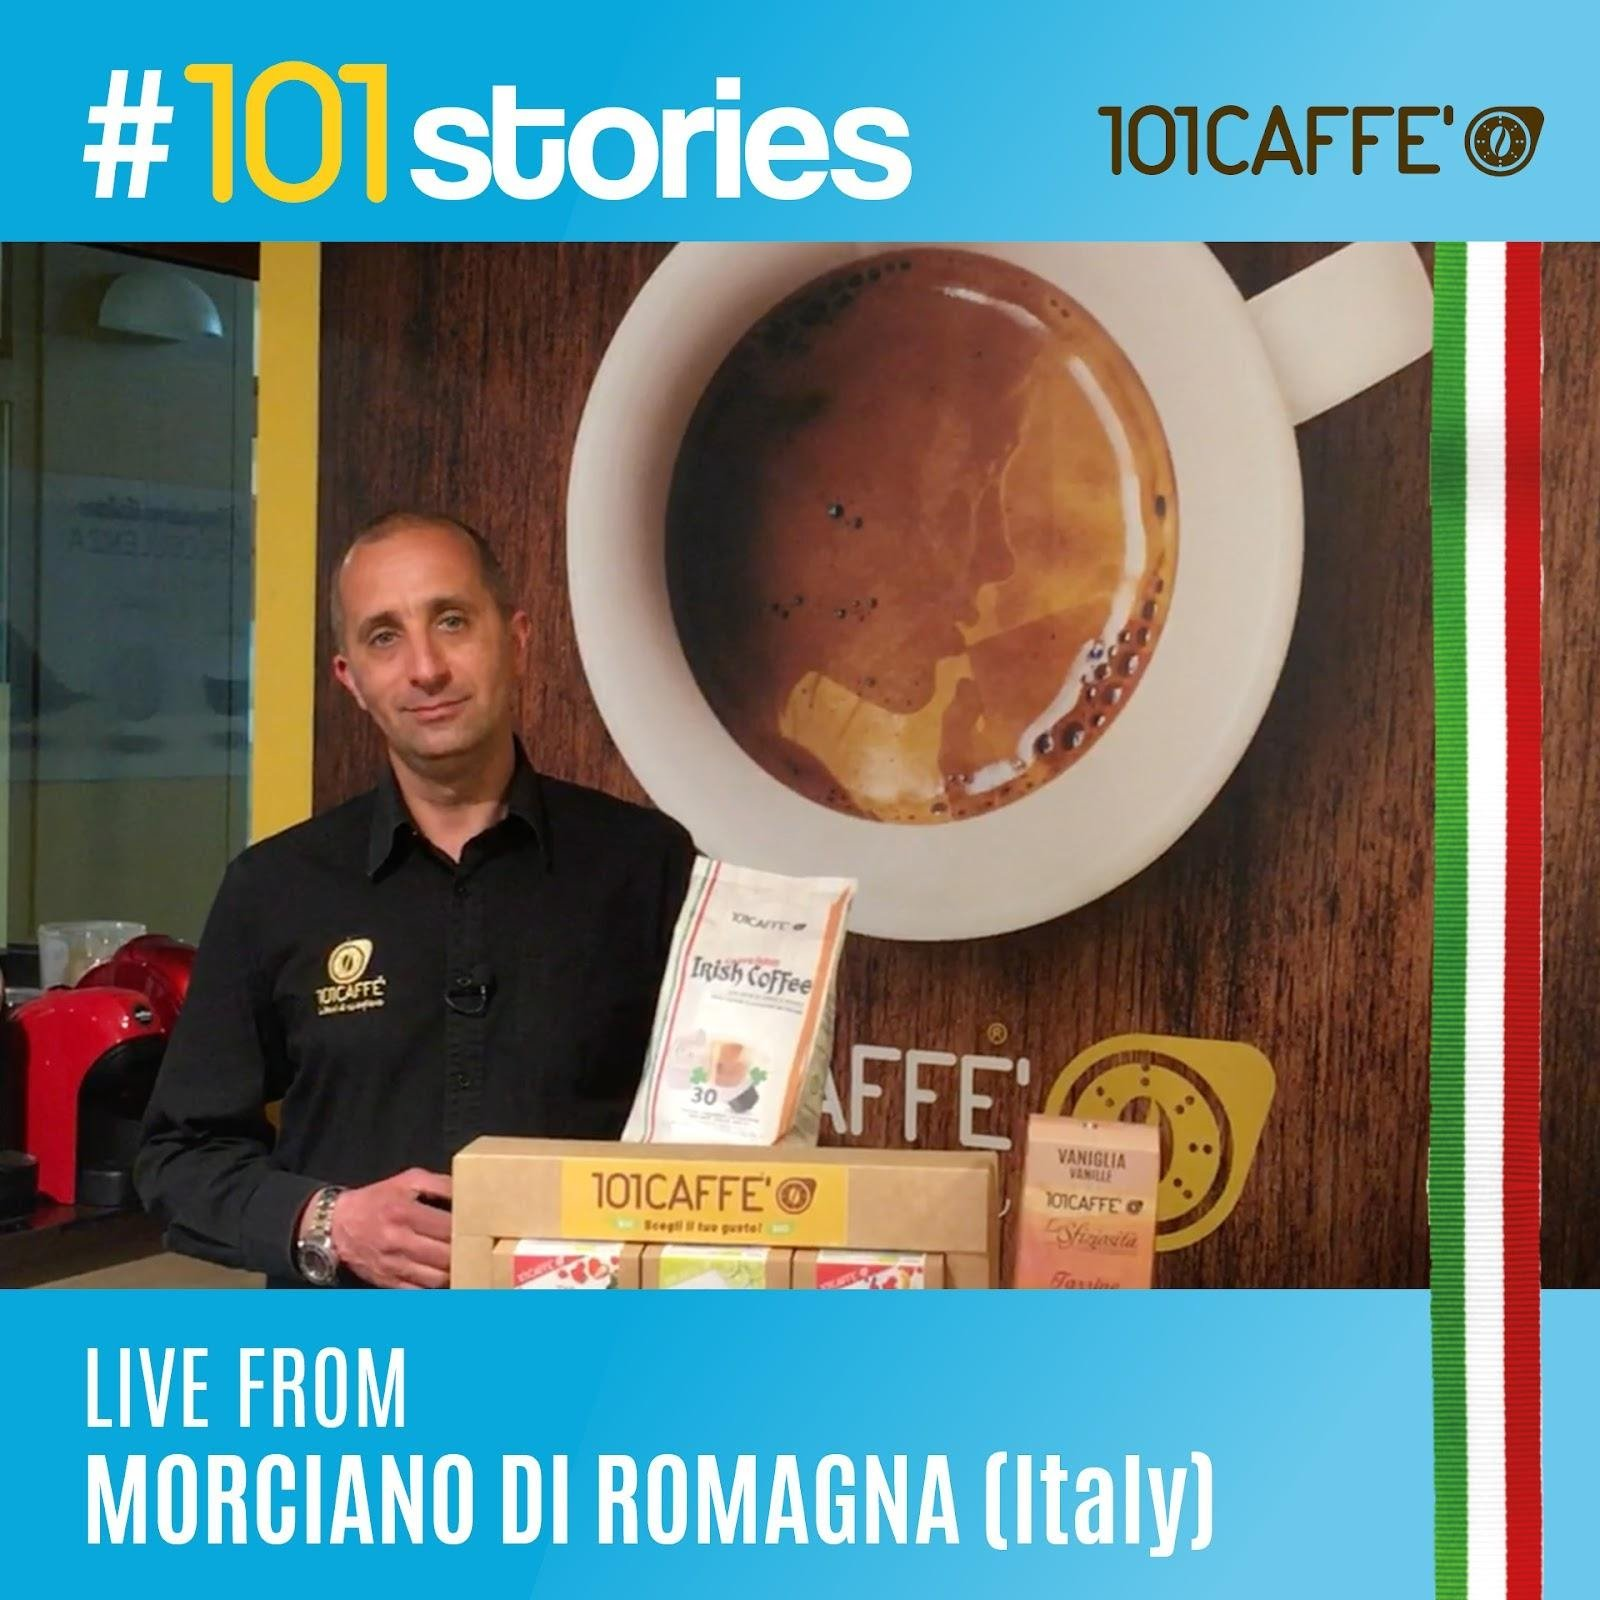 affiliate of the franchising network of 101CAFFE' stores of coffee pods and capsules